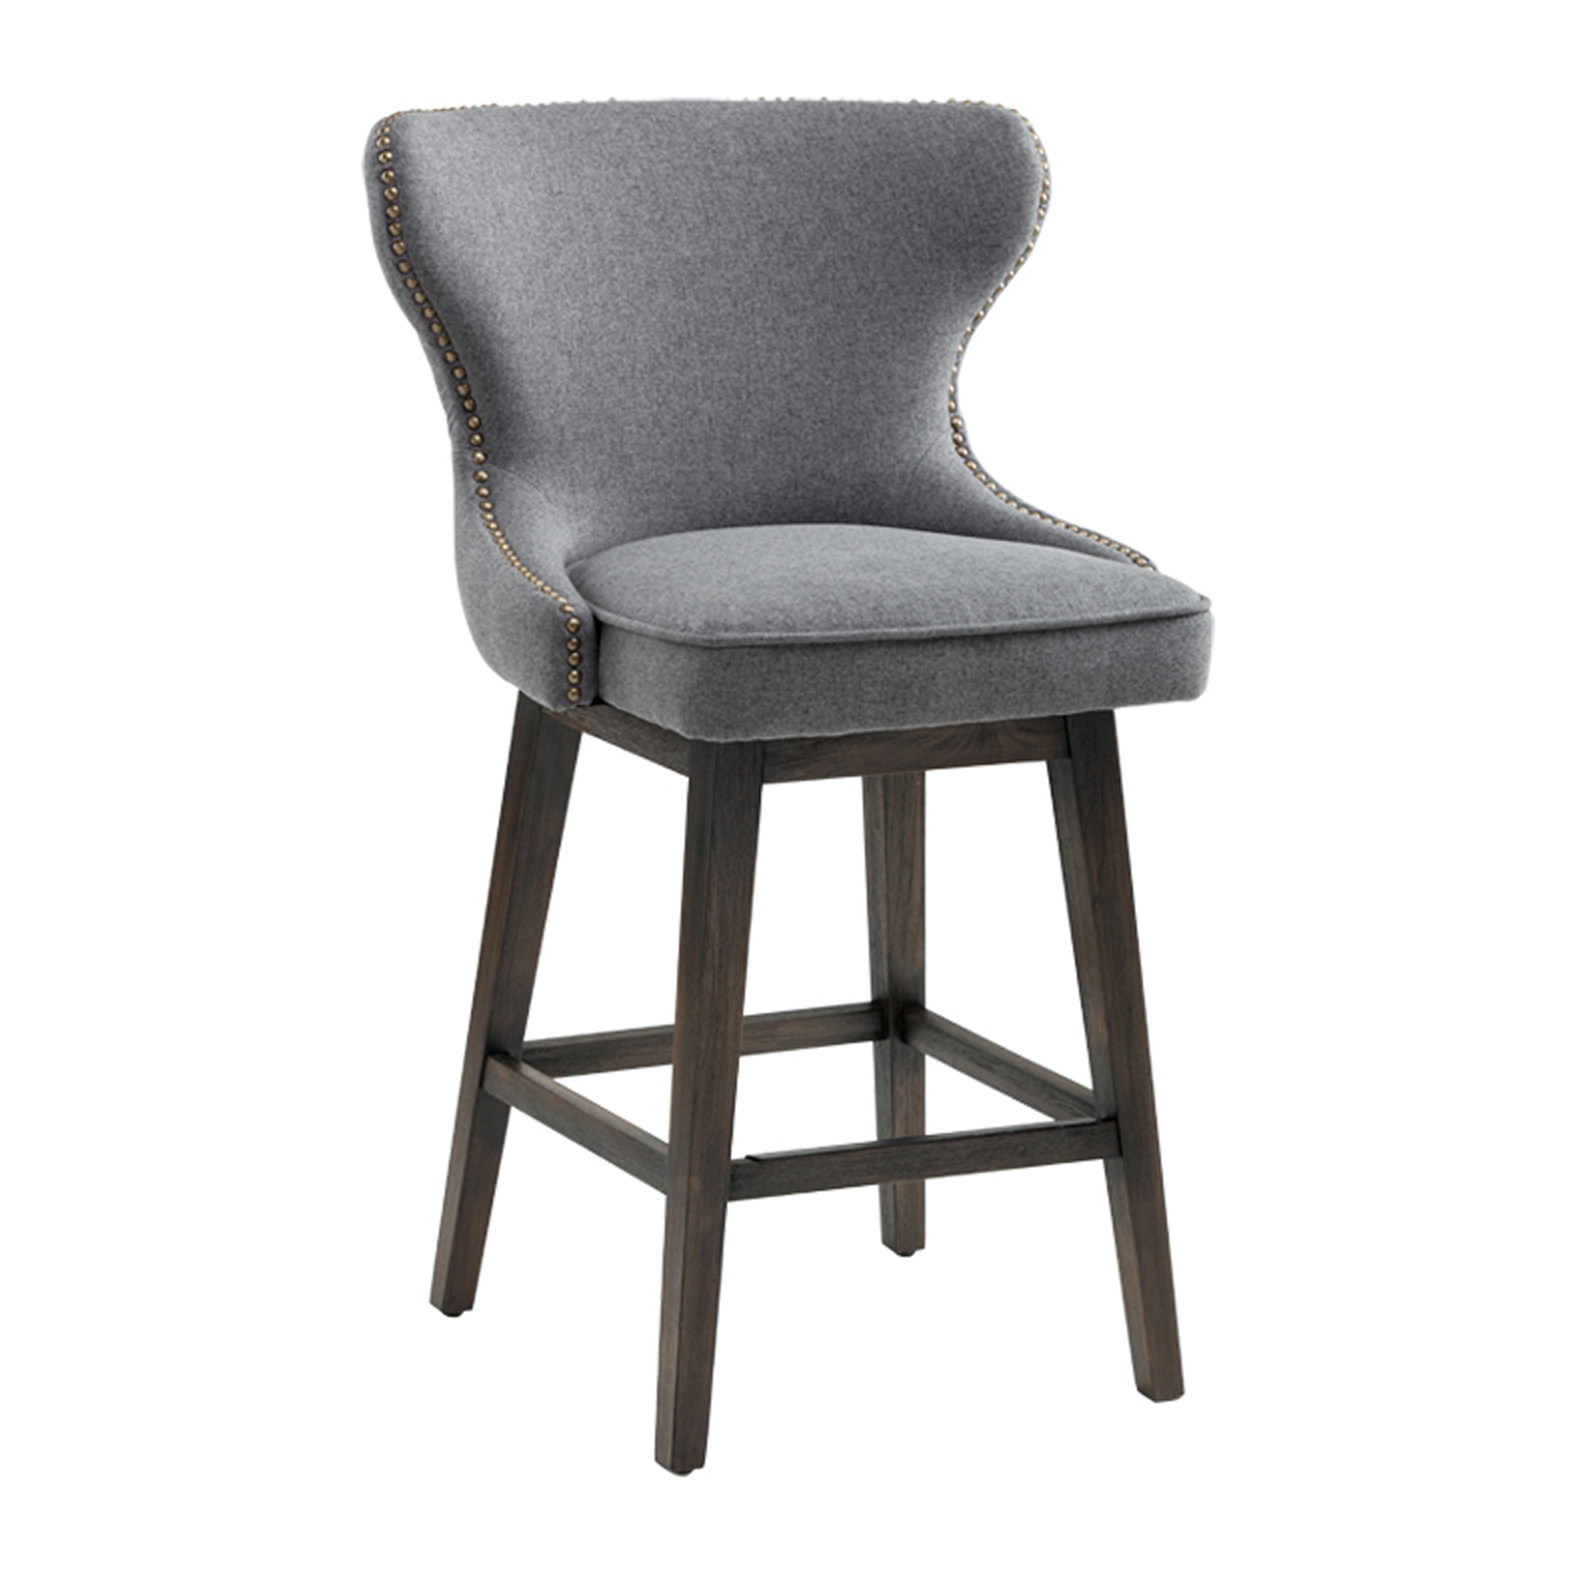 Astonishing Ariana Swivel Counter Stool Unemploymentrelief Wooden Chair Designs For Living Room Unemploymentrelieforg